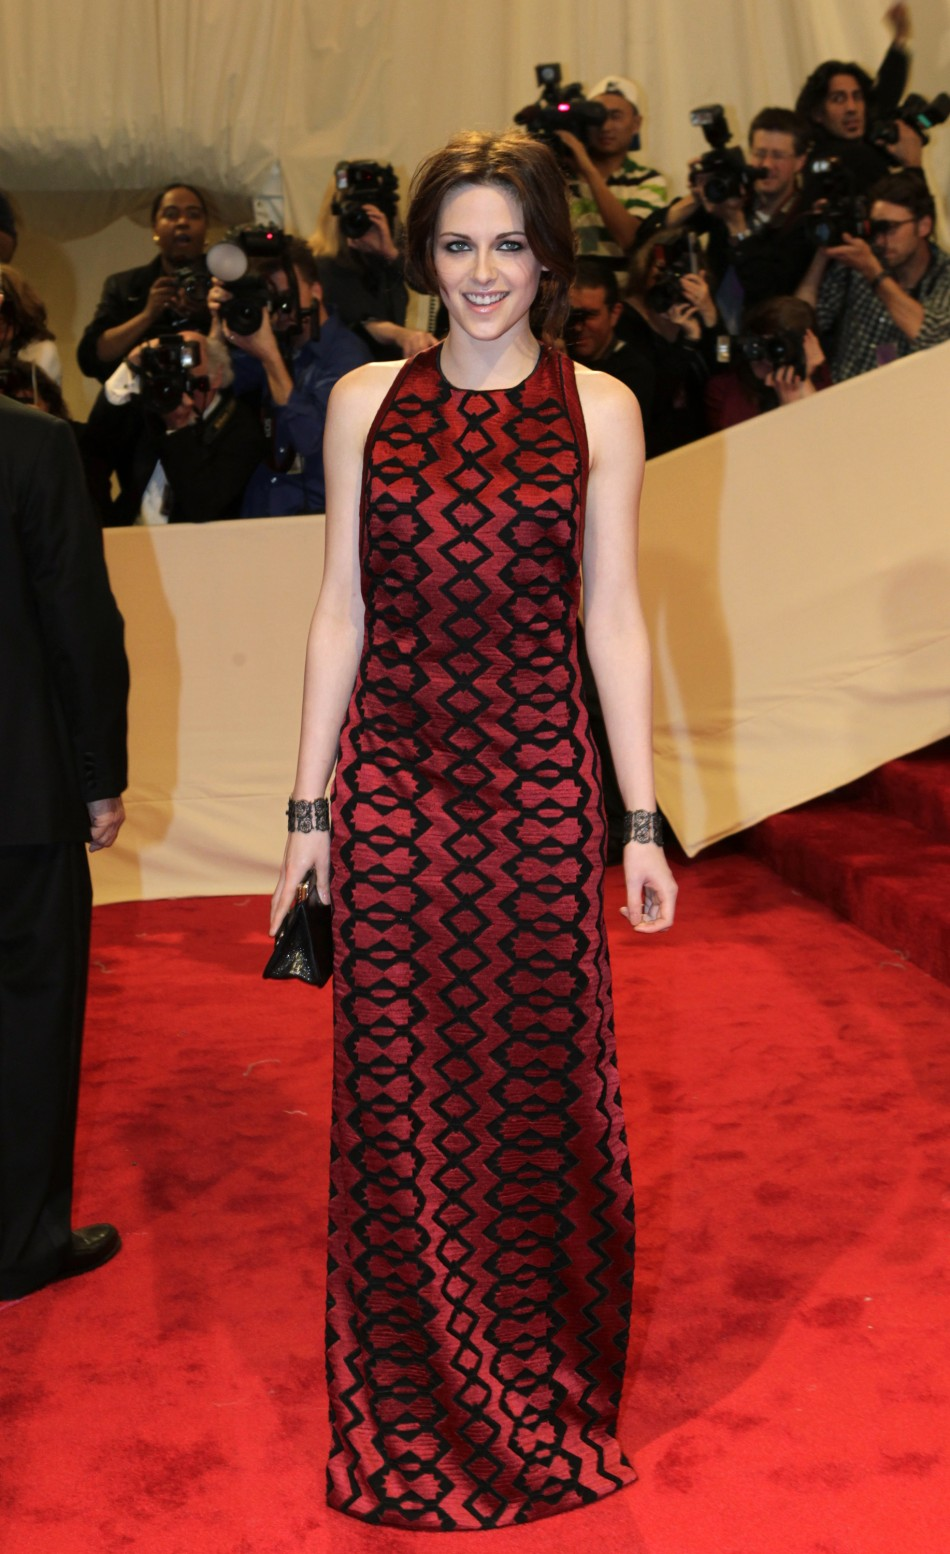 Actress Kristen Stewart poses on arrival at the Metropolitan Museum of Art Costume Institute Benefit celebrating the opening of Alexander McQueen Savage Beauty in New York